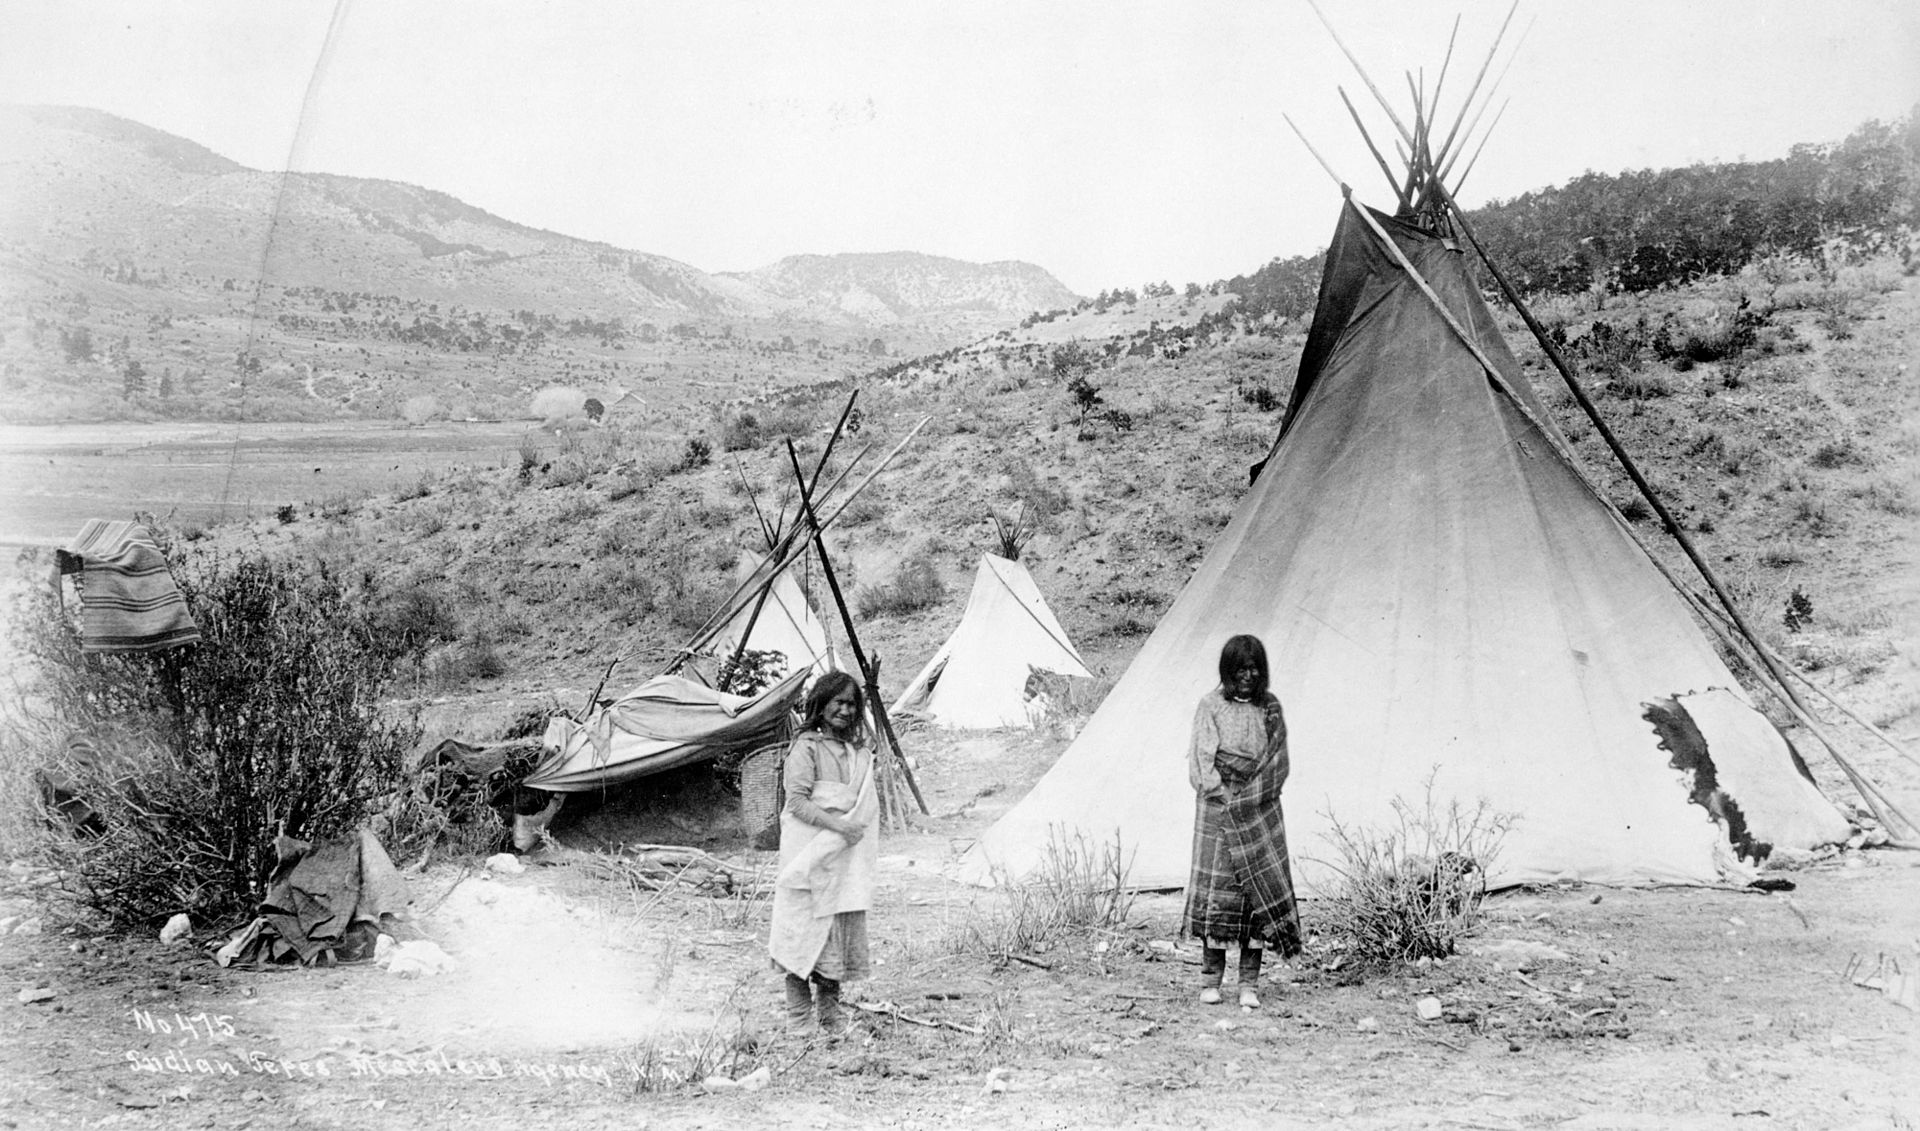 an overview of the lives of apache indians of north america in new mexico American indian tribes articles - cultures of the mayans, pawnee, choctaw, apache, comanche, nez perce, mohawk and others more native american articles - articles refering to native americans as they were the first to inhabit the country.